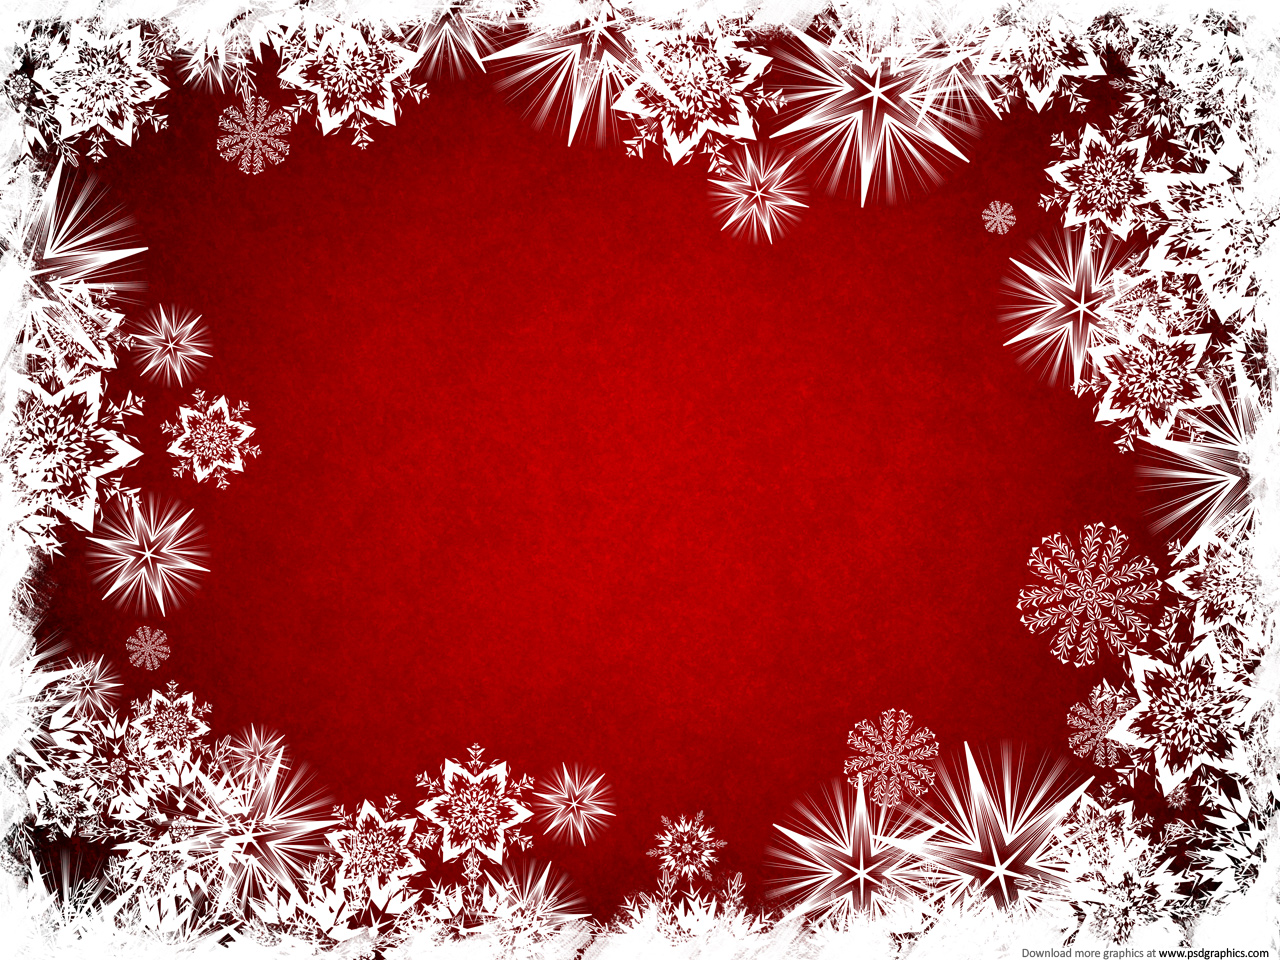 Medium size preview 1280x960px Abstract Christmas background 1280x960